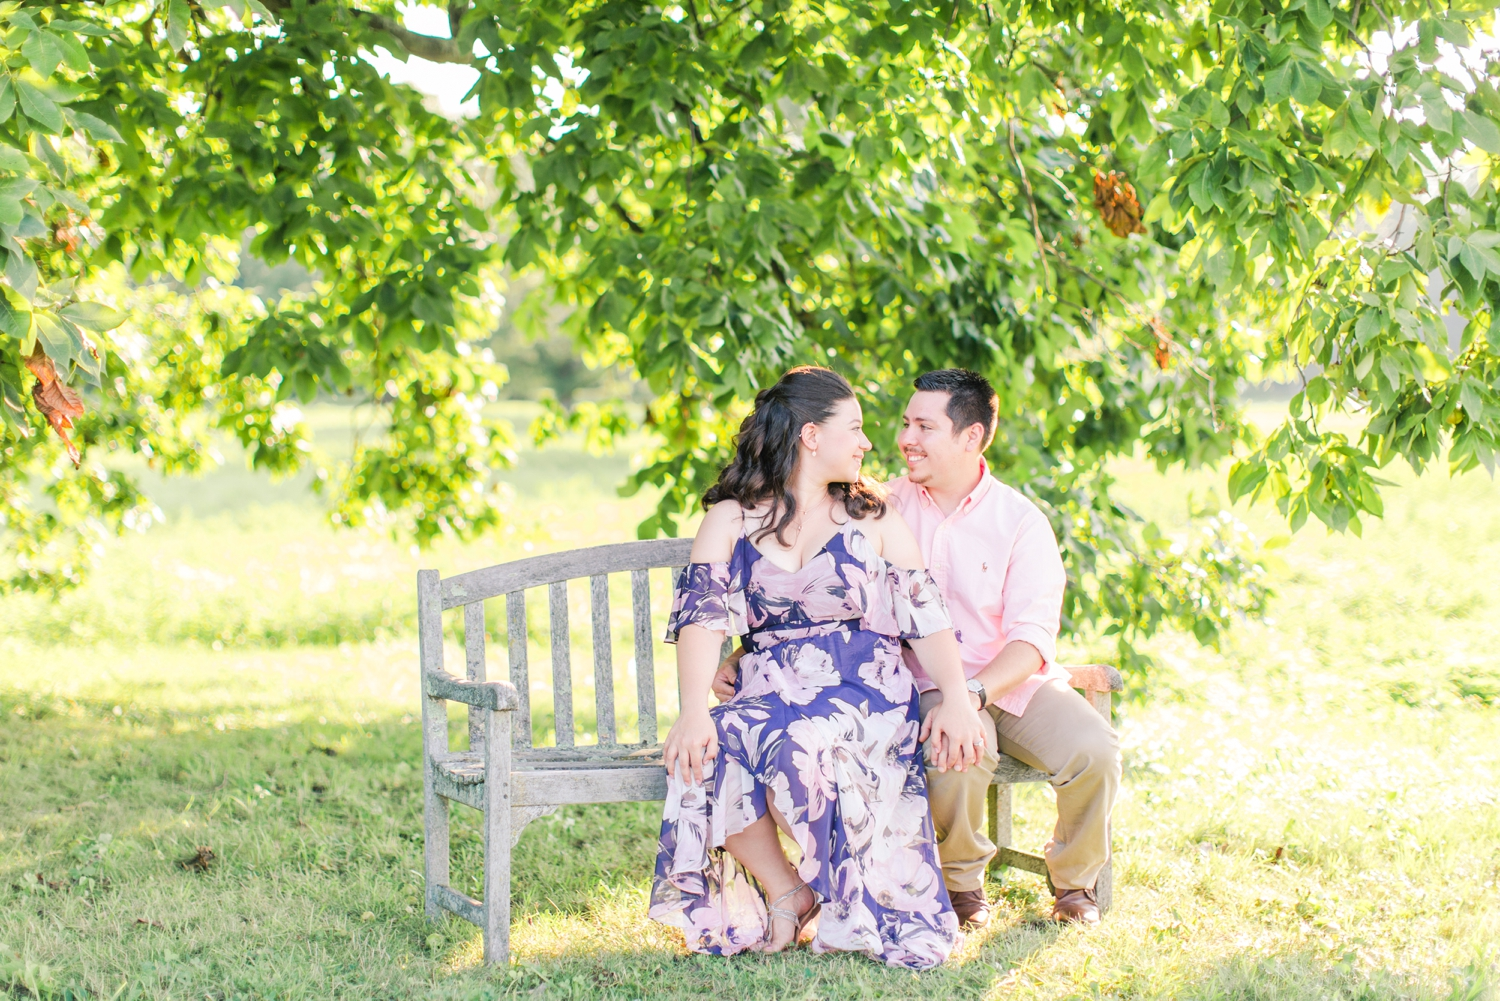 waveny-park-engagement-session-new-canaan-connecticut-nyc-wedding-photographer-shaina-lee-photography-photo-9.jpg